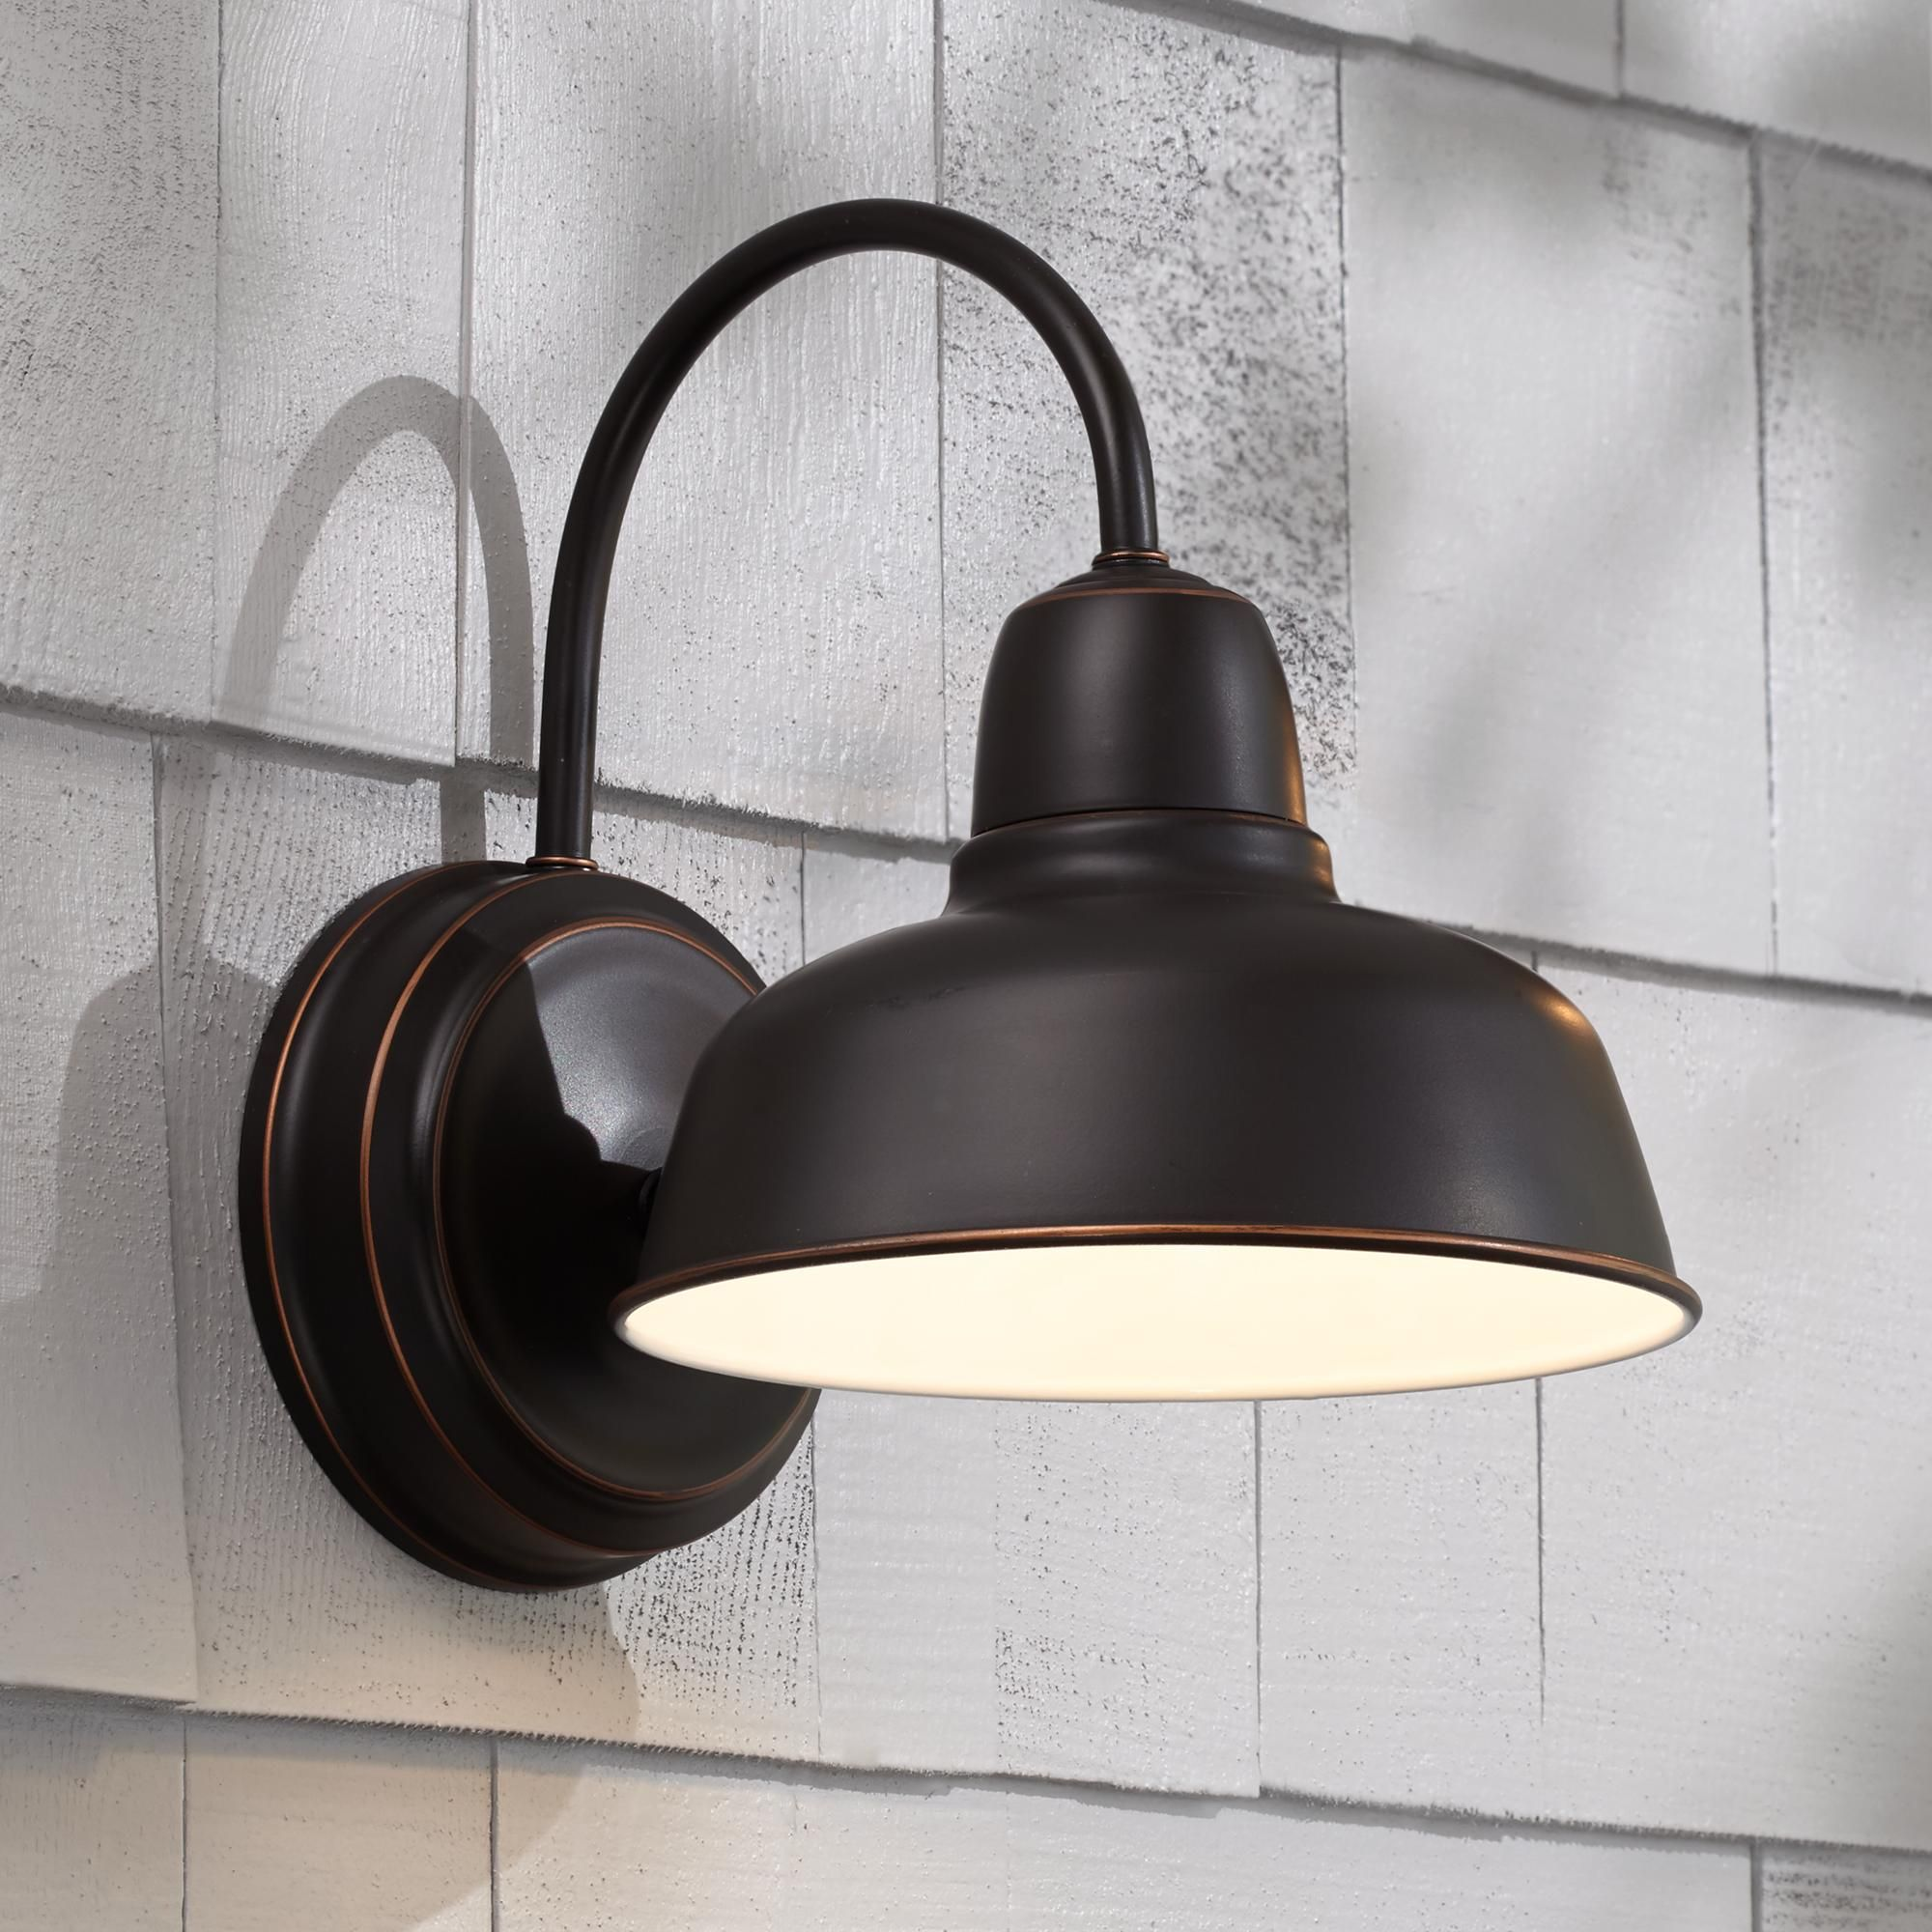 industrial style outdoor lighting. Add An Industrial Look To Your Decor With This Bronze Wall Light Fixture That Looks Great Style Outdoor Lighting N